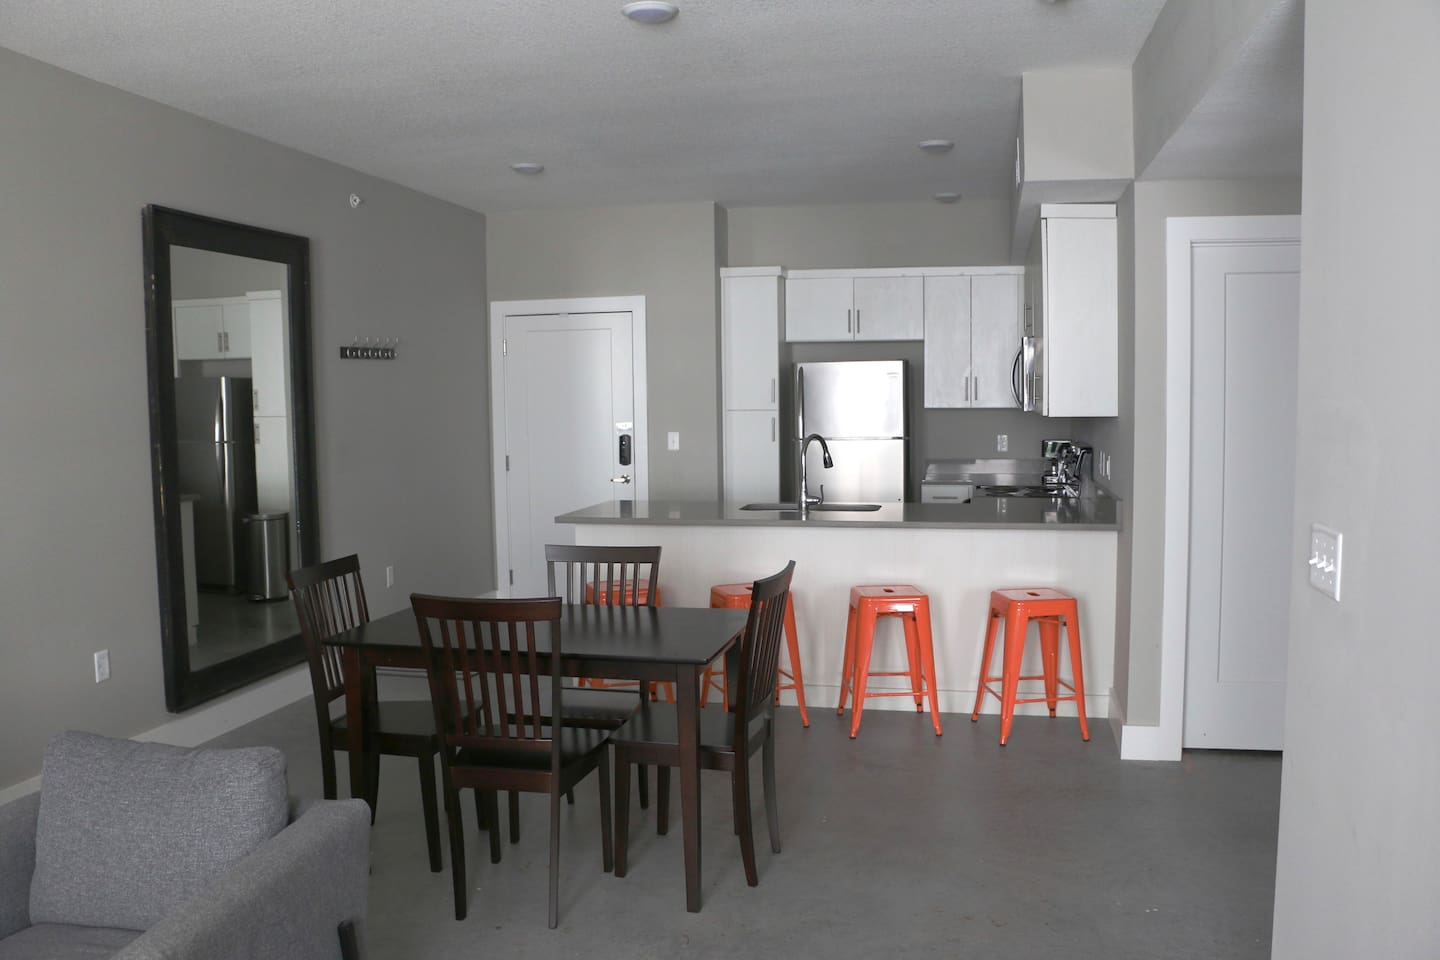 brewery vacation rental apartments for rent in lawrence kansas